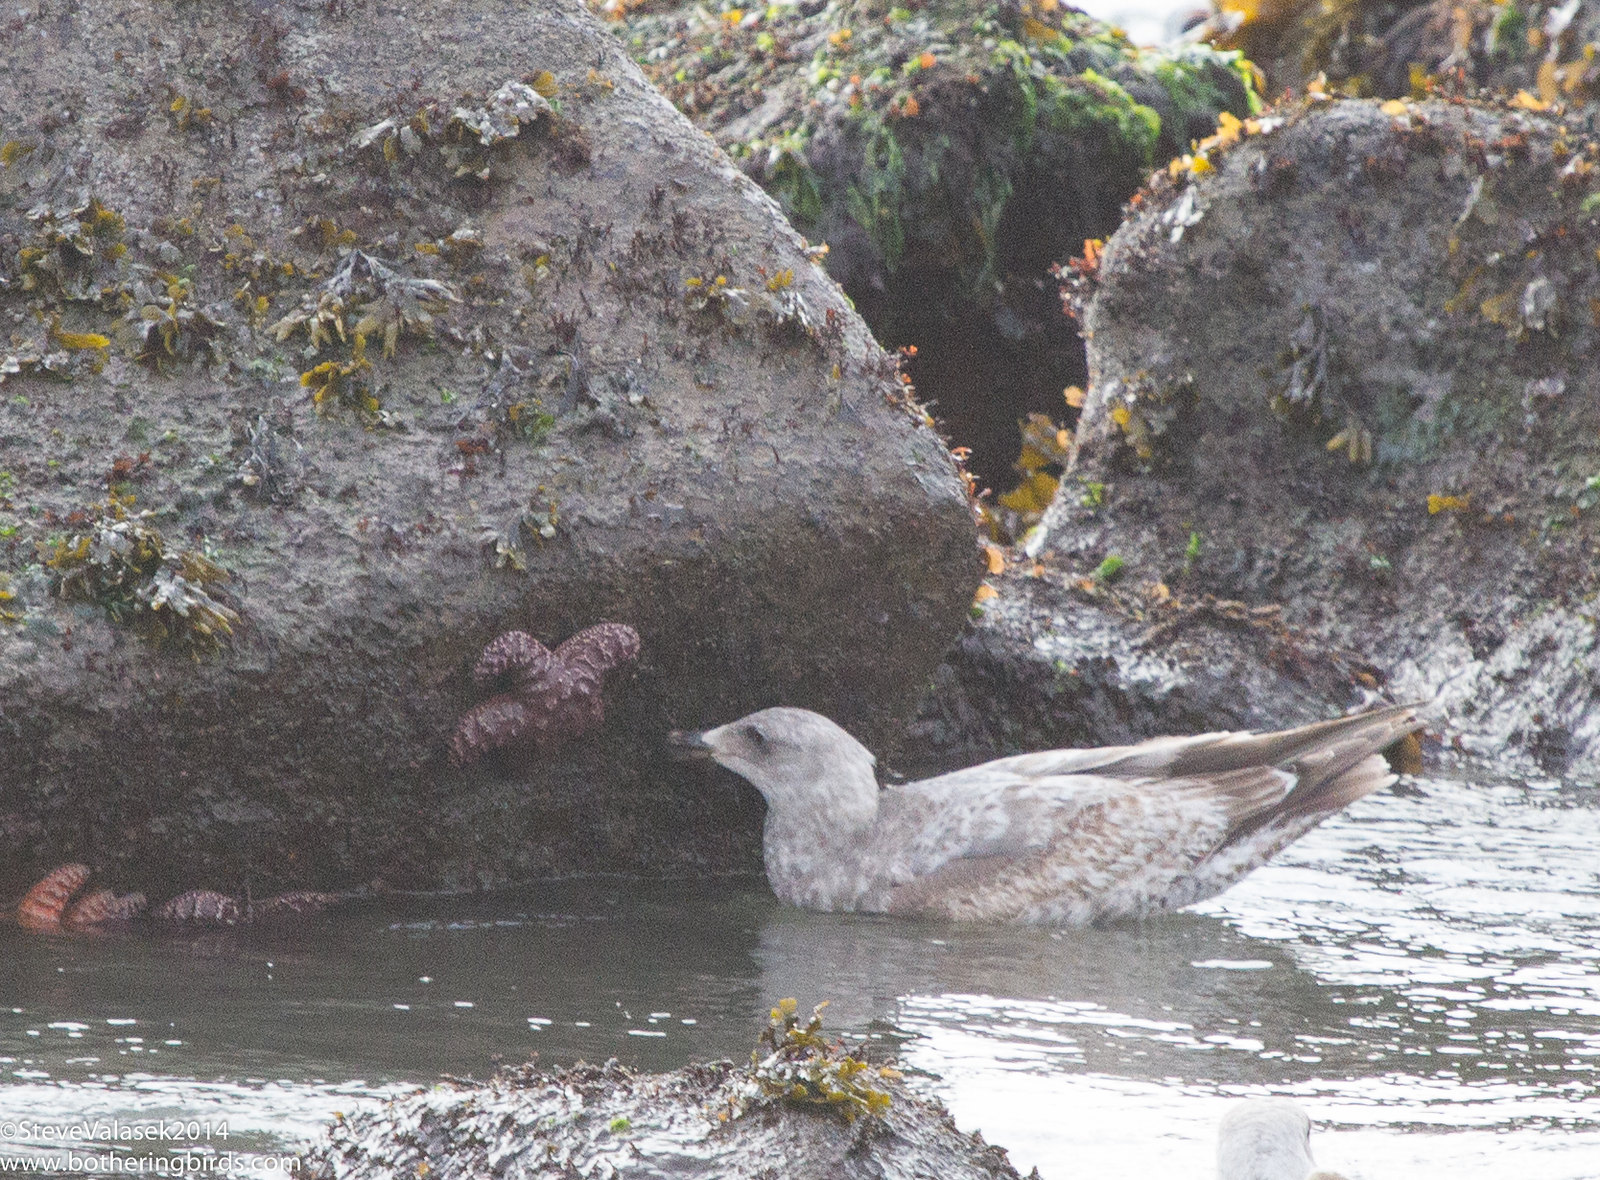 Immature Gull and Sea Star